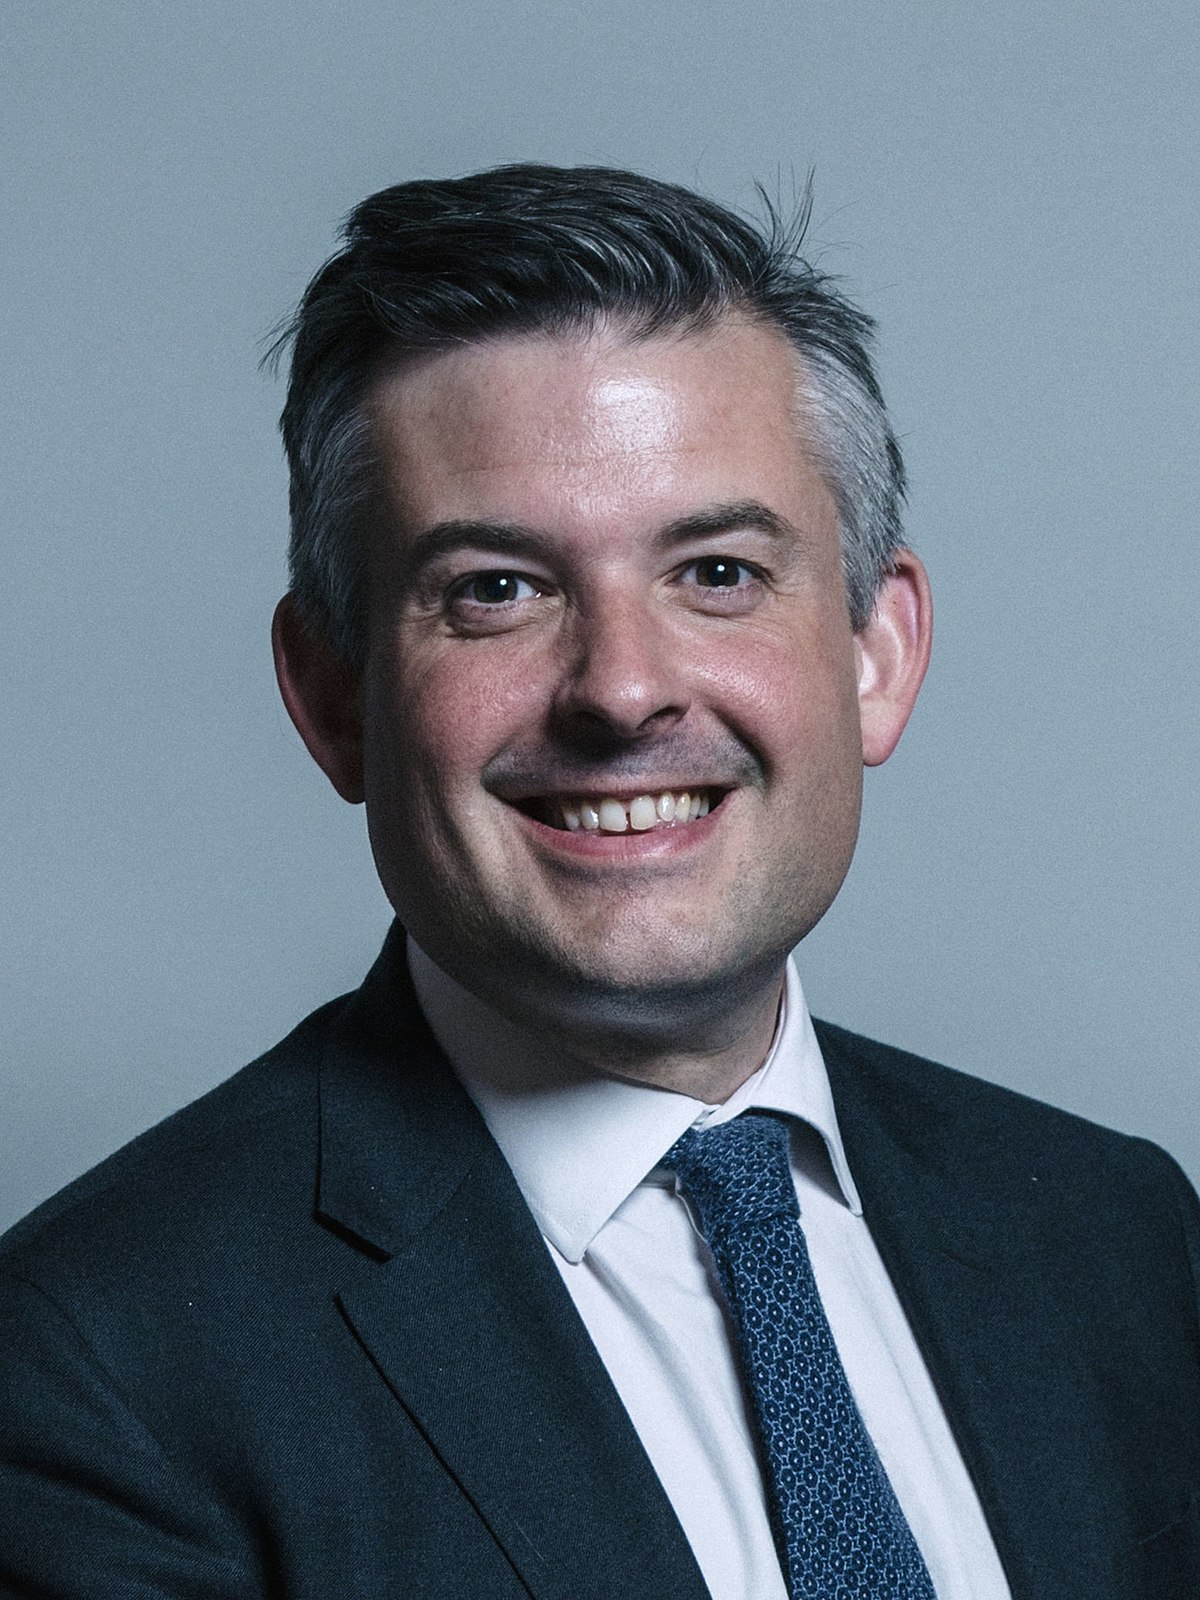 Jonathan_Ashworth_MP.jpg